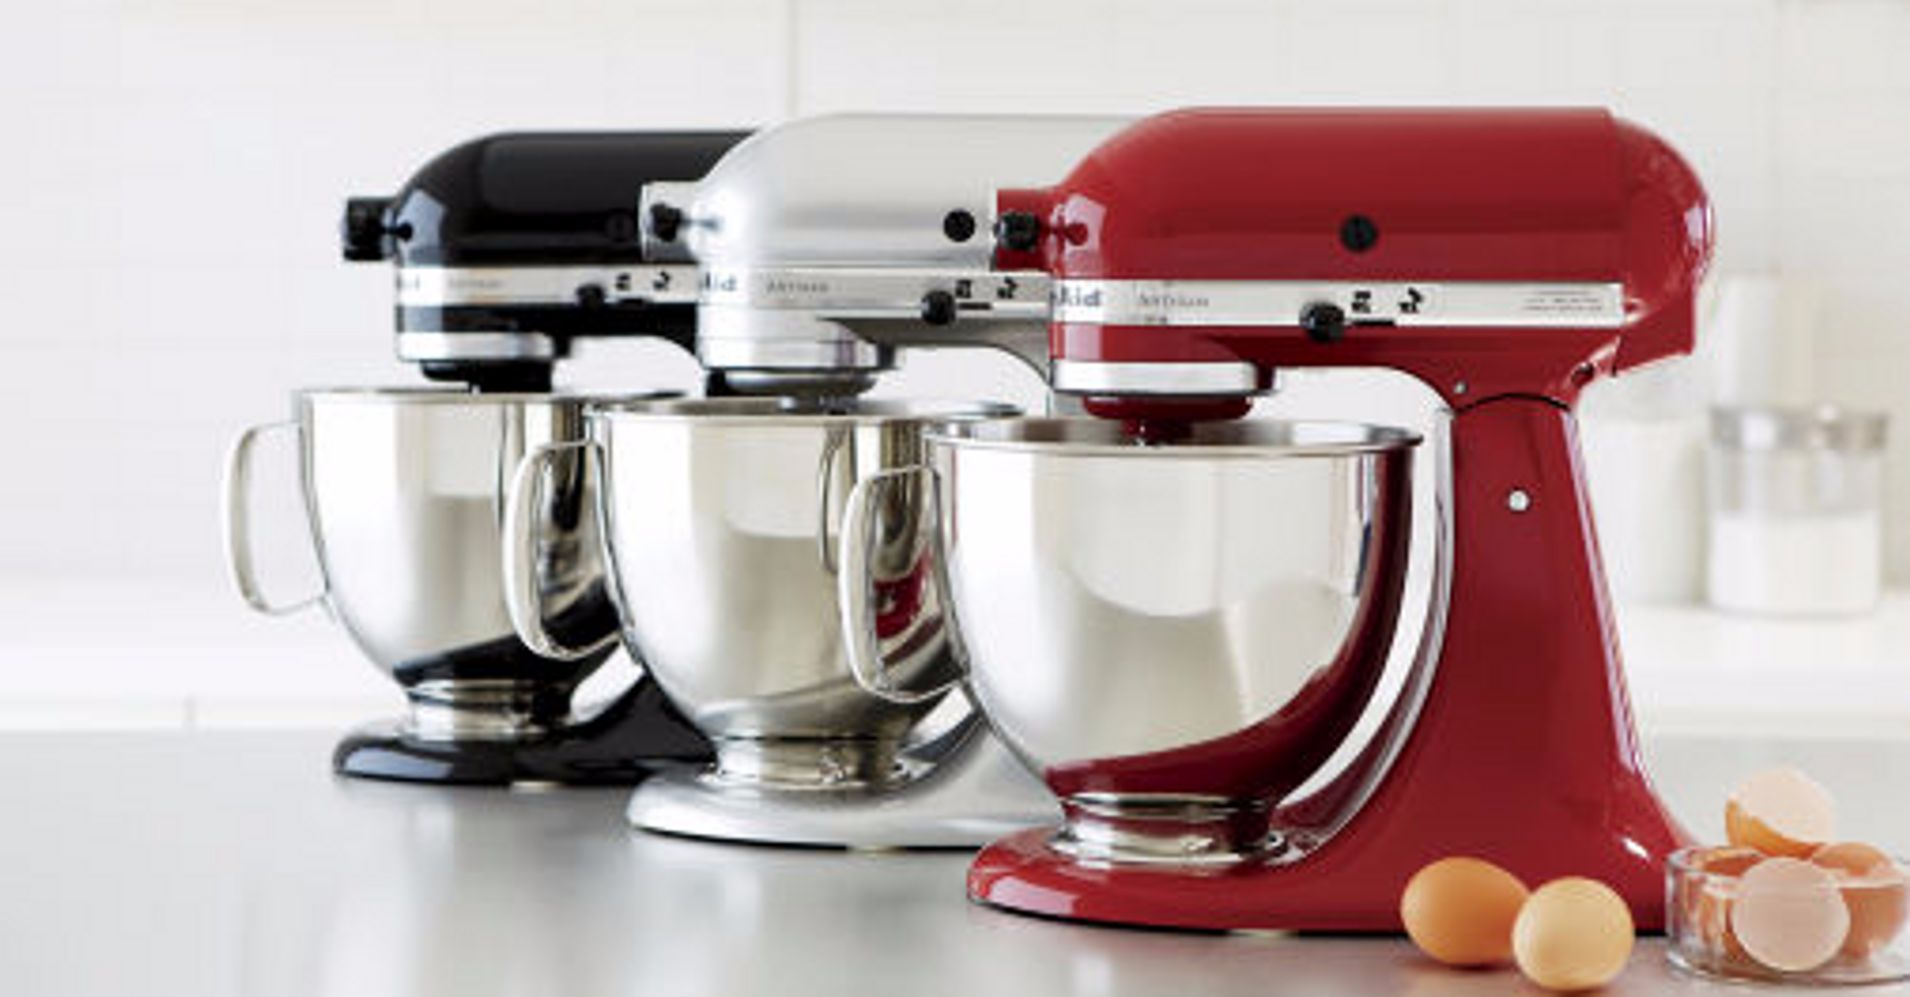 Williams-Sonoma's KitchenAid Mixers Are So Cheap Right Now, You Might Buy Two. Fourth of July sales have begun! By Madison Flager. KitchenAid mixers are up to 55 percent off, with more deals.